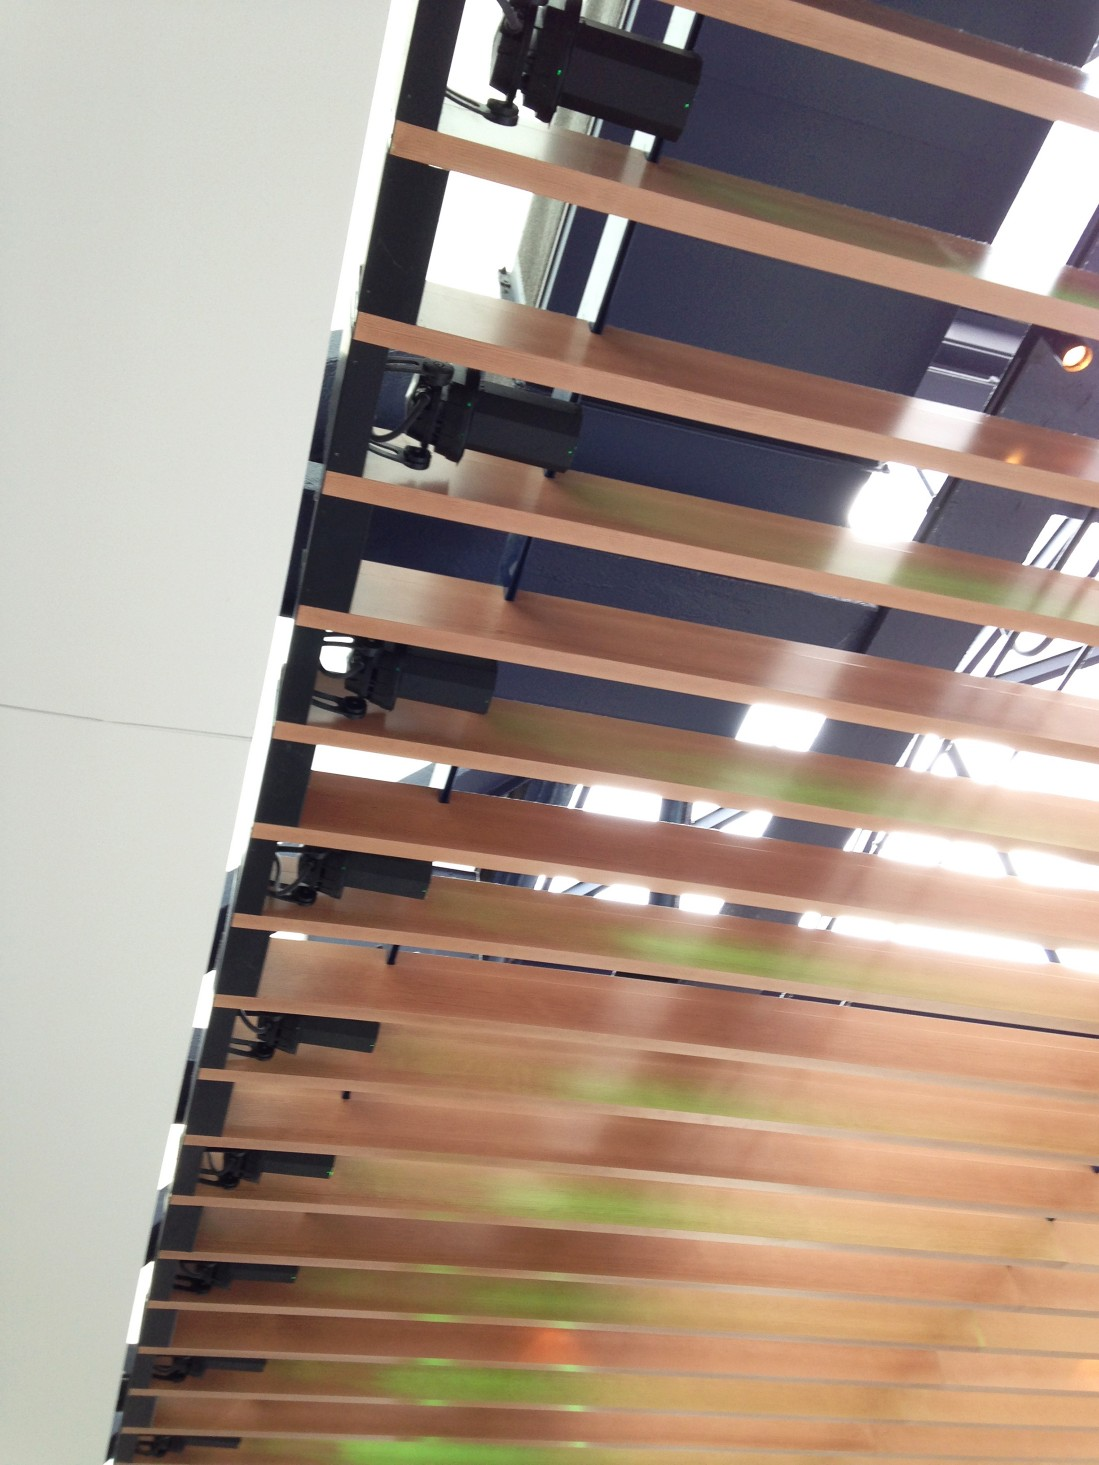 Lumenbeam Medium RGB luminaires with a  6-degree beam are mounted in between slats at the top.